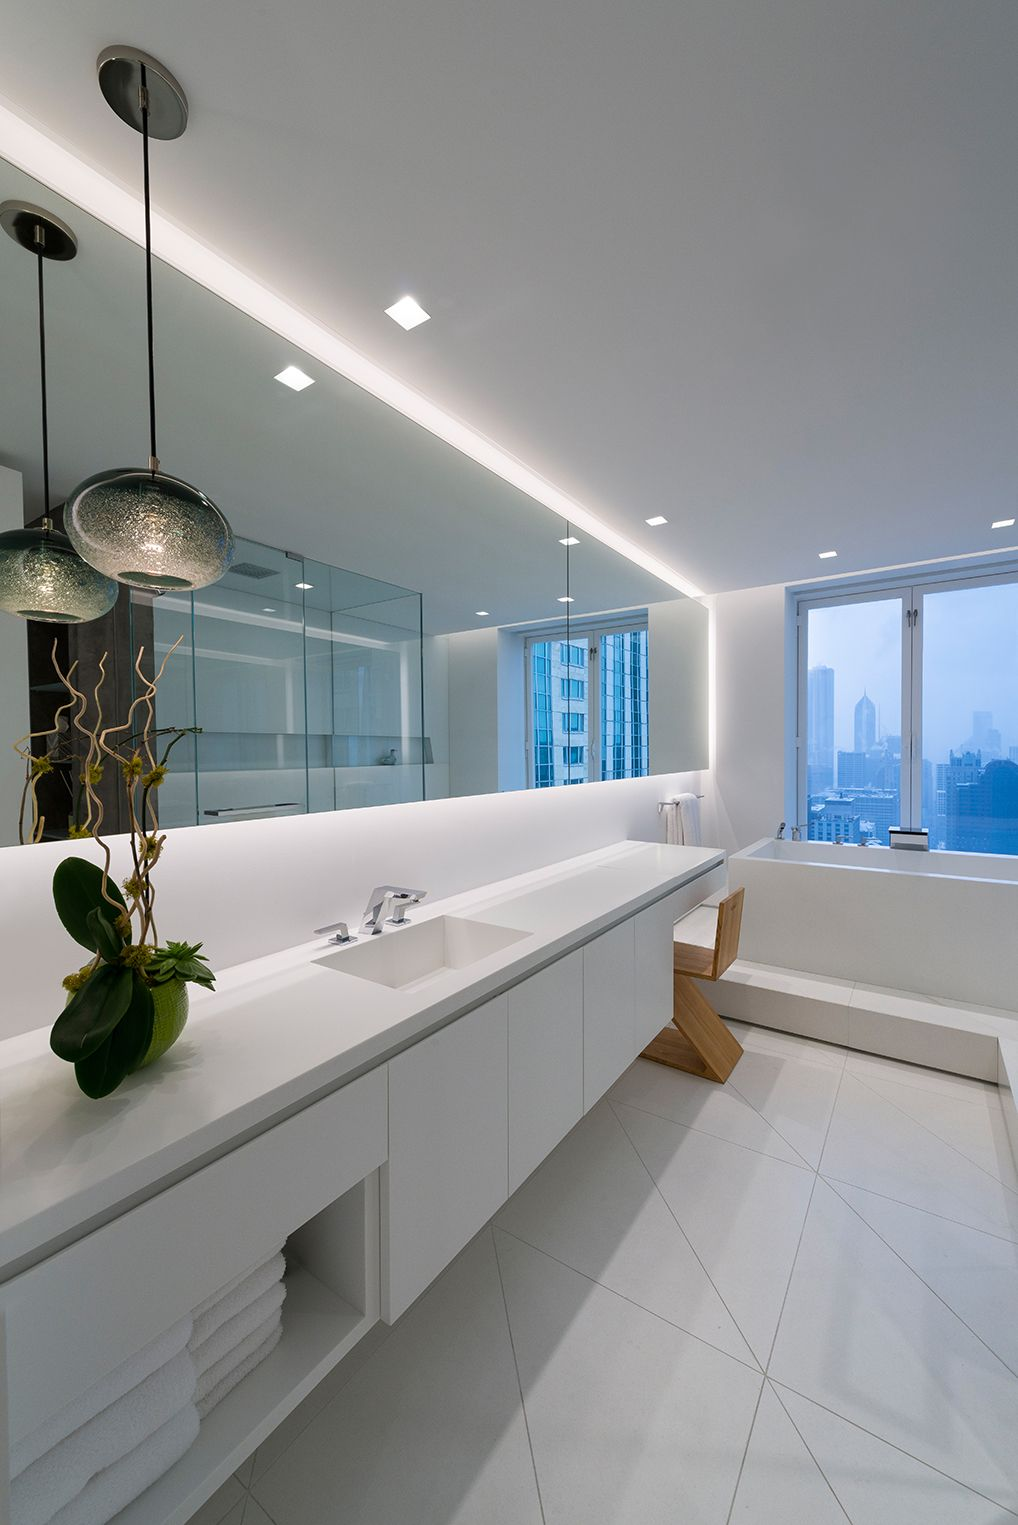 Place Soft Strip Along Bathroom Mirrors To Illuminate The Space And Create A Floating Effect